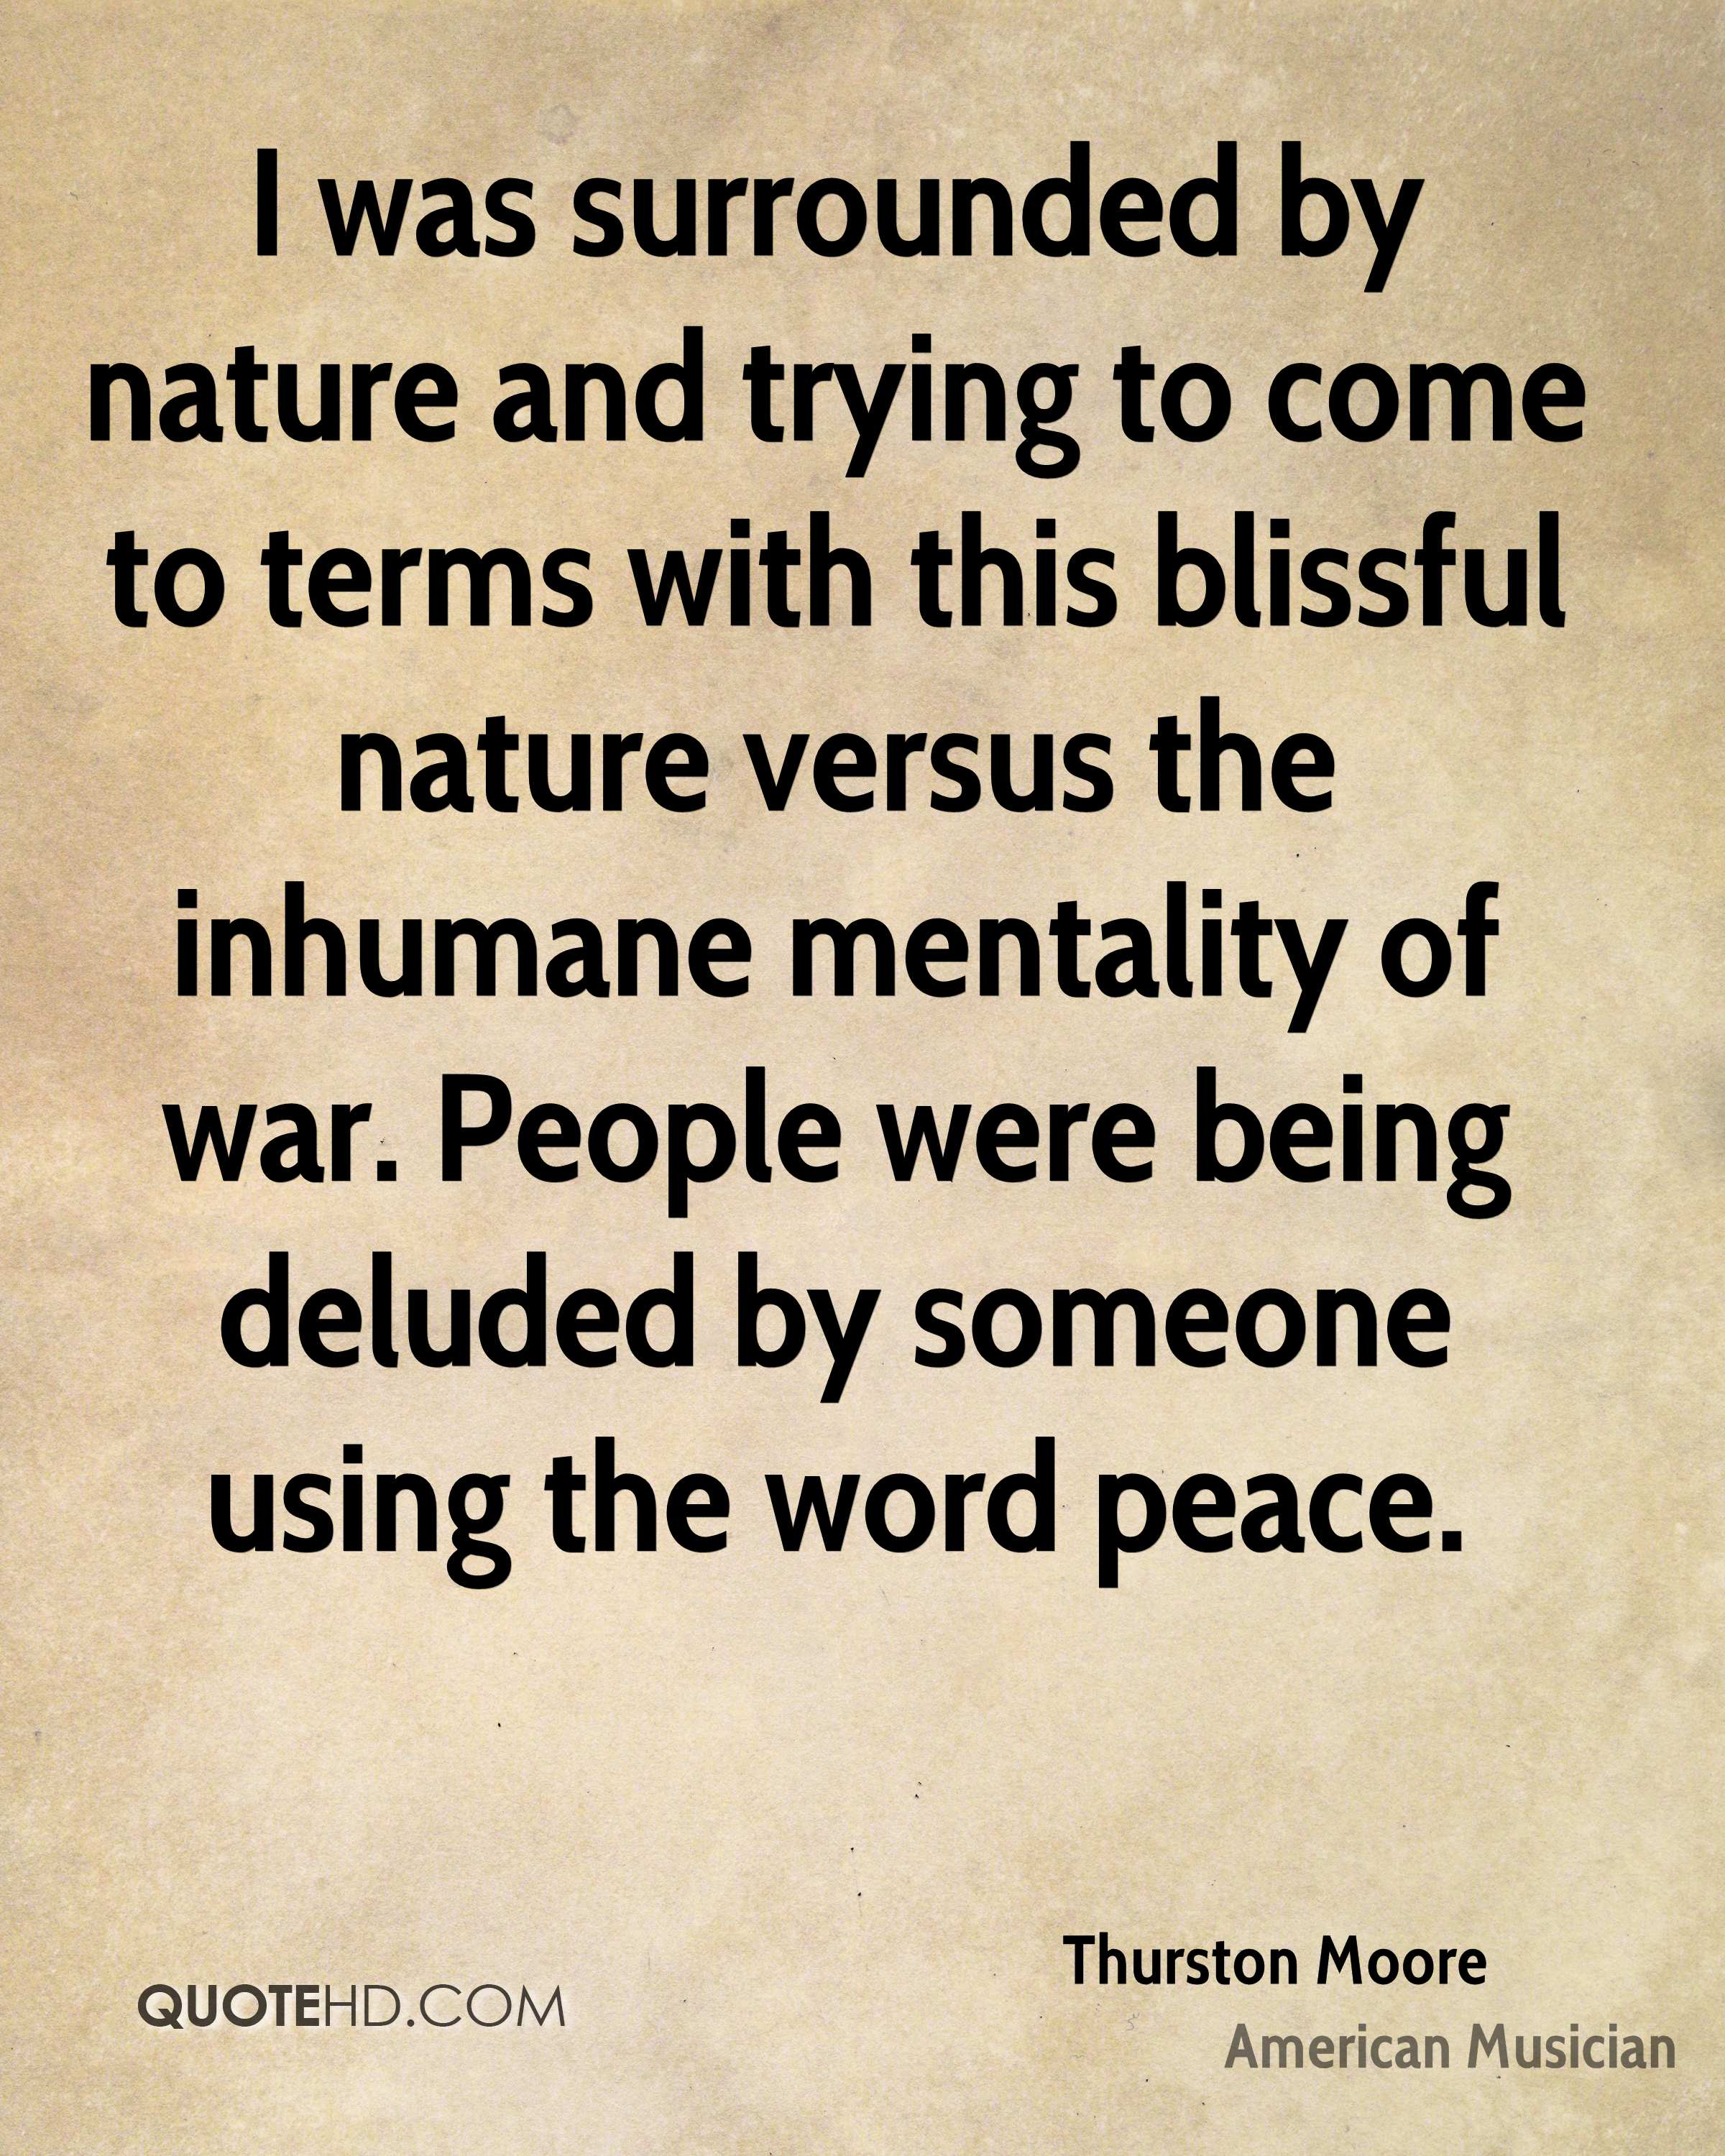 I was surrounded by nature and trying to come to terms with this blissful nature versus the inhumane mentality of war. People were being deluded by someone using the word peace.